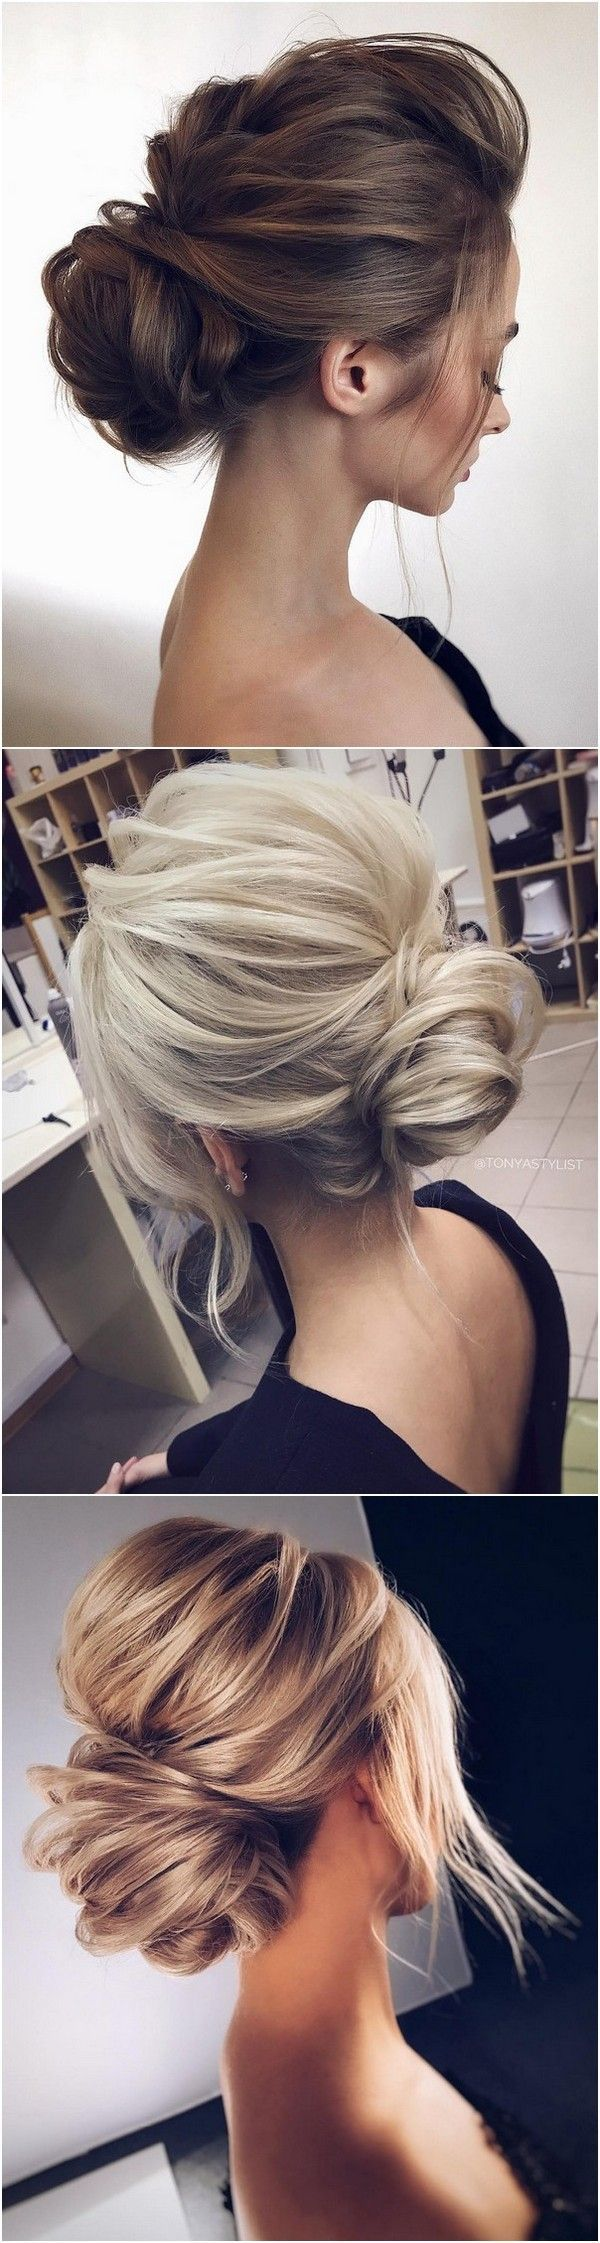 "elegant updo wedding hairstyles <a class=""pintag"" href=""/explore/wedding/"" title=""#wedding explore Pinterest"">#wedding</a> <a class=""pintag"" href=""/explore/hairstyles/"" title=""#hairstyles explore Pinterest"">#hairstyles</a> <a class=""pintag"" href=""/explore/weddinghairstyles/"" title=""#weddinghairstyles explore Pinterest"">#weddinghairstyles</a><p><a href=""http://www.homeinteriordesign.org/2018/02/short-guide-to-interior-decoration.html"">Short guide to interior decoration</a></p>"